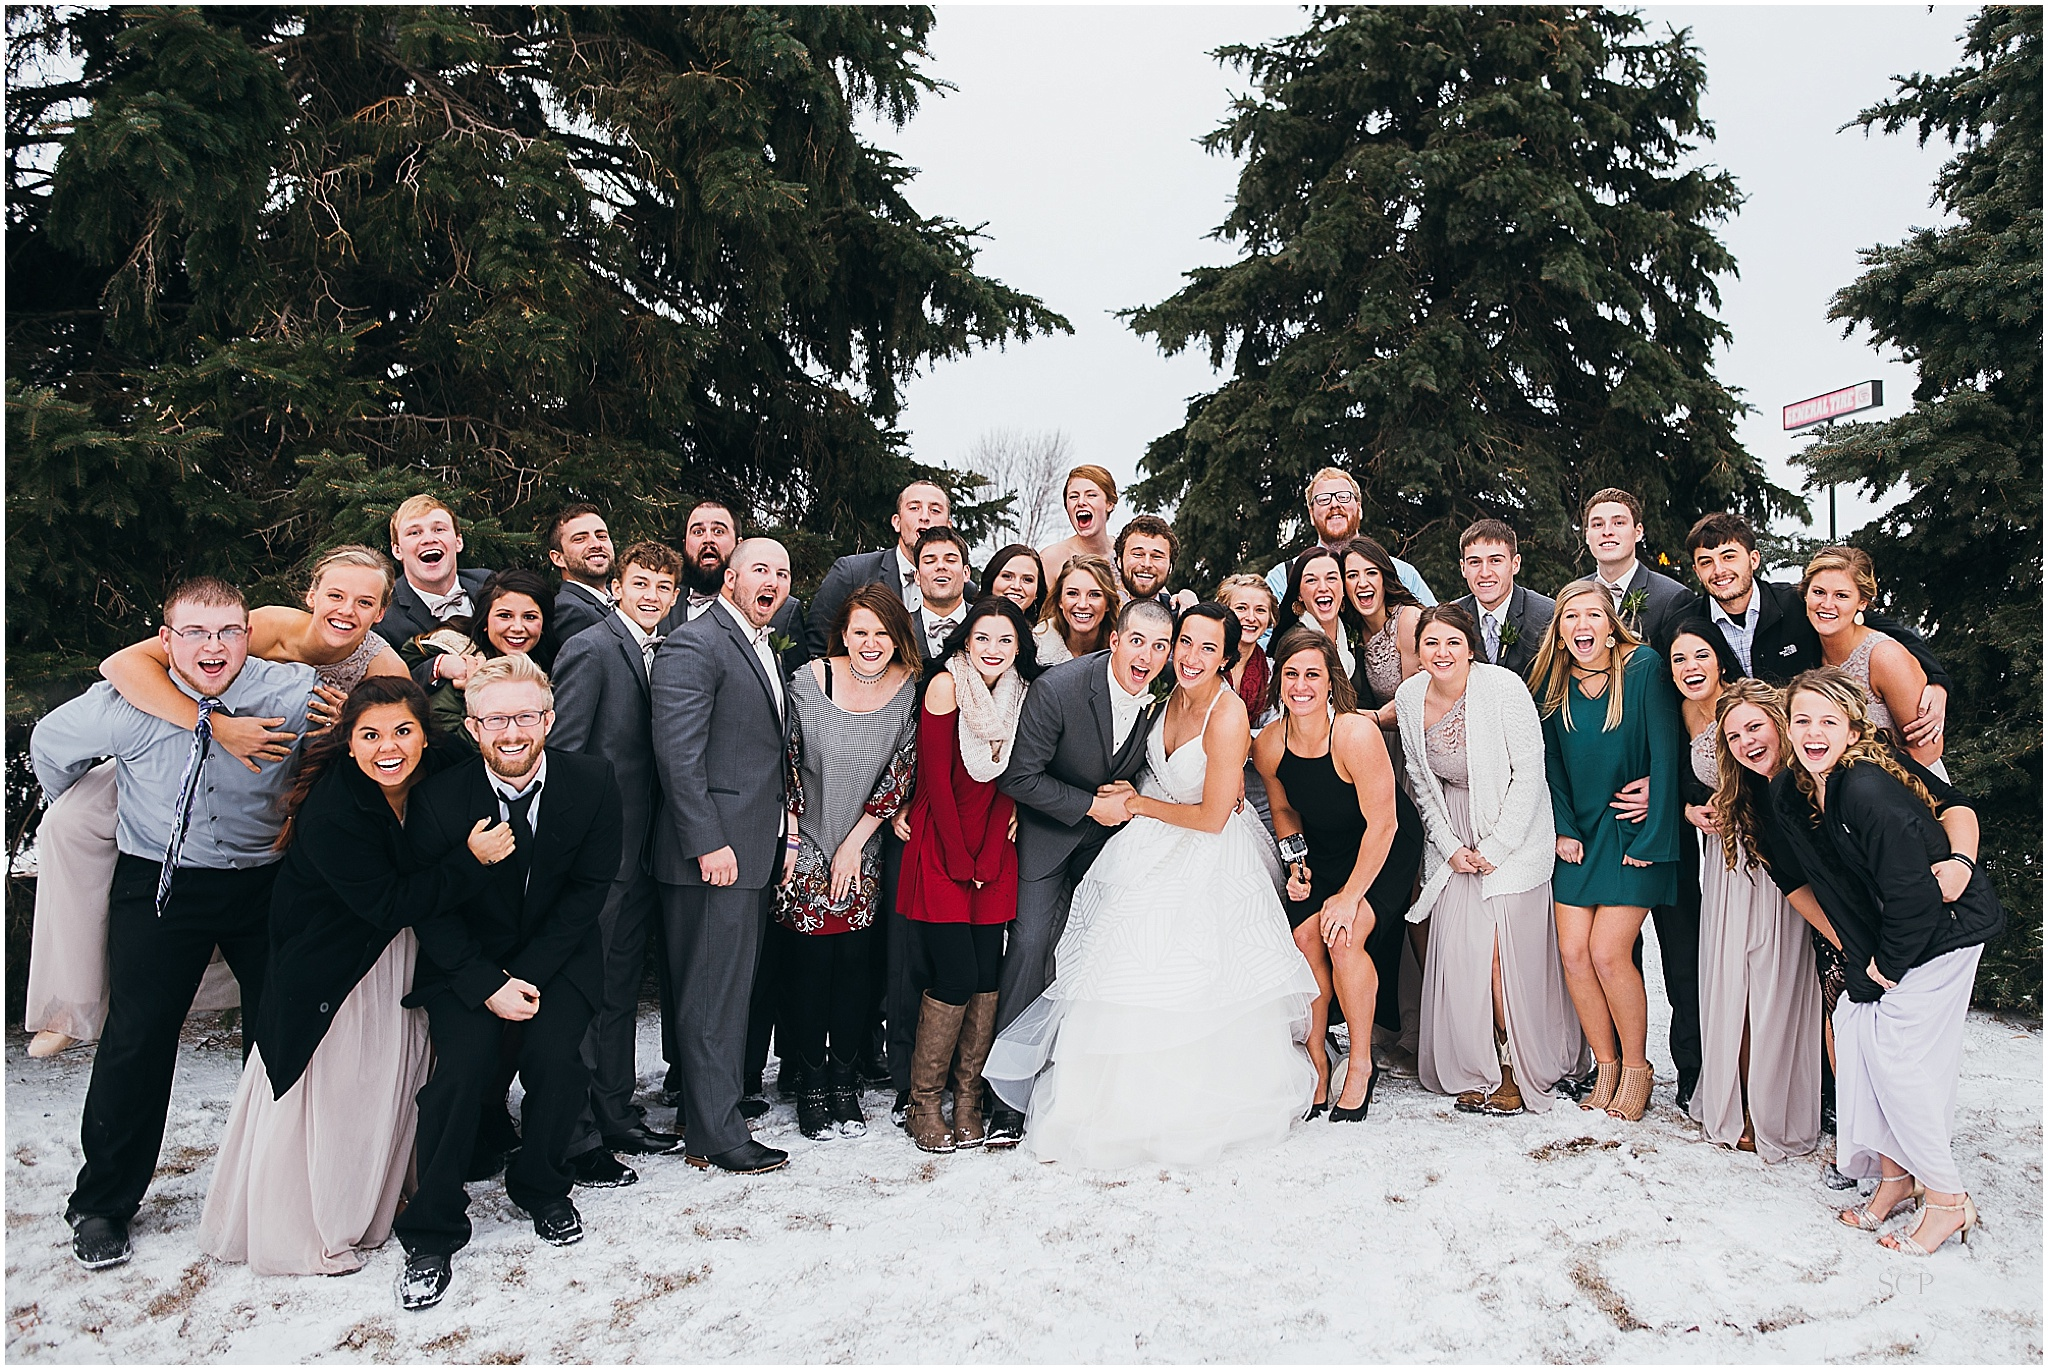 winterweddingmichaelachase-1776.jpg